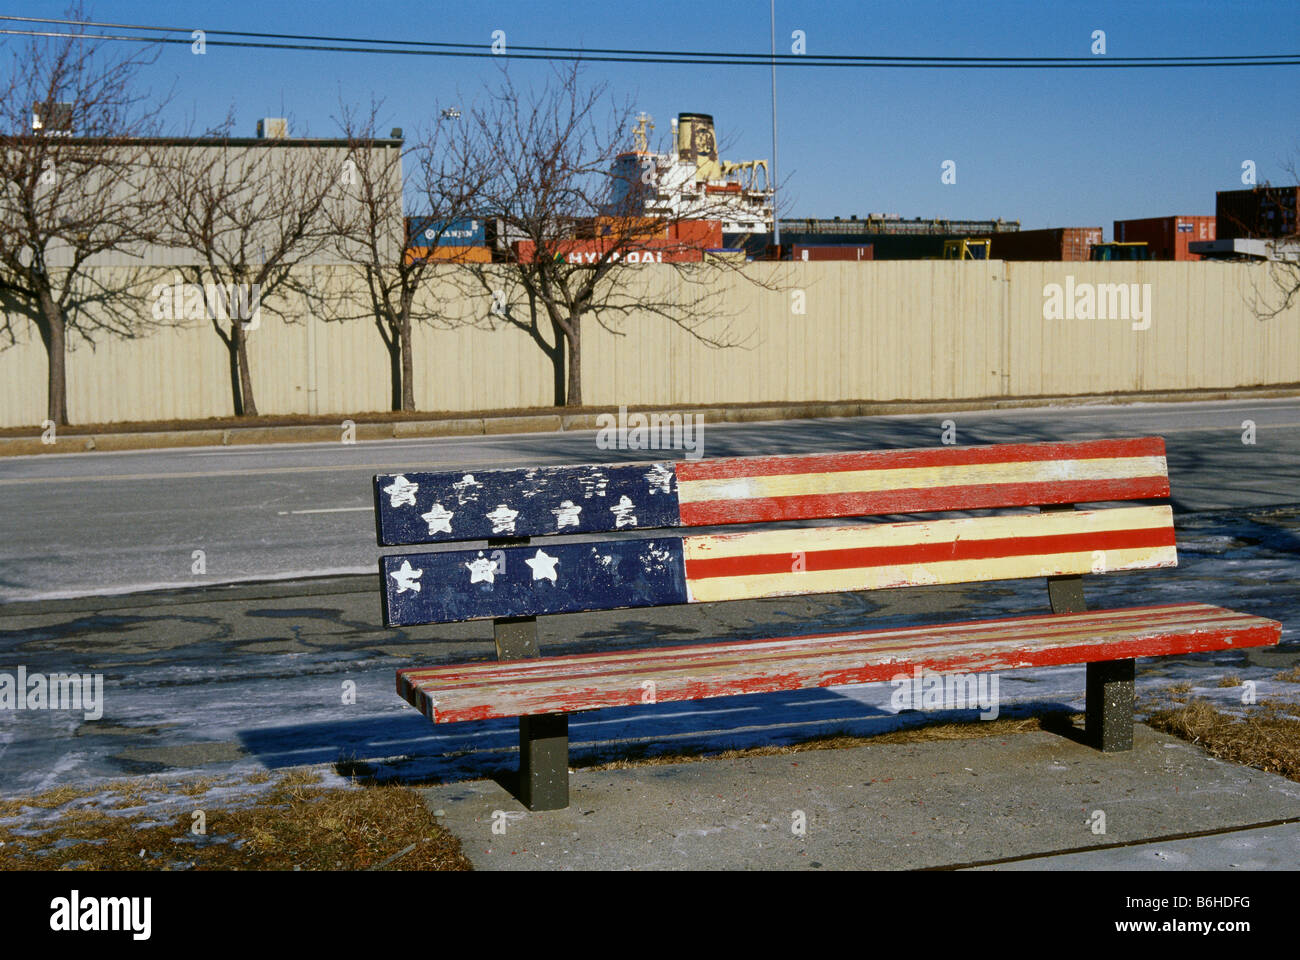 USA Boston Bench painted with the stars and stripes South Boston - Stock Image